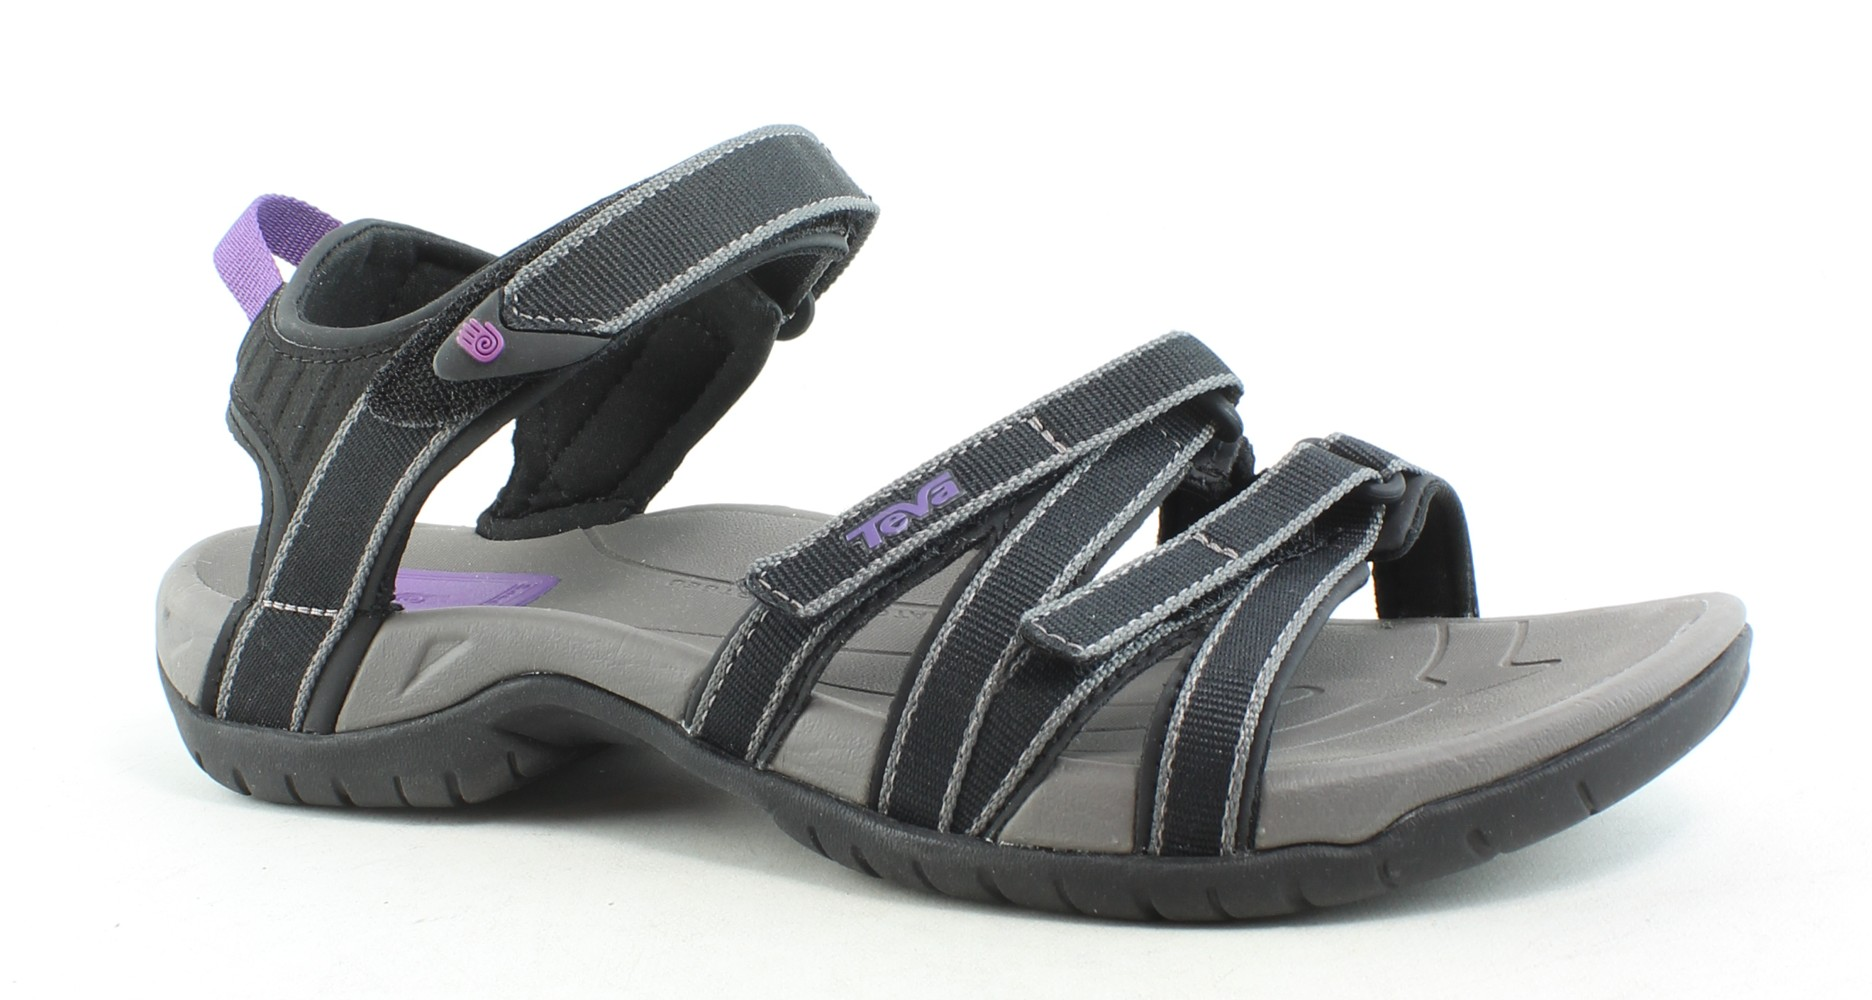 8ac8a02c6fc2f Details about Teva Womens Tirra Black Grey Sandals Size 10 (171515)